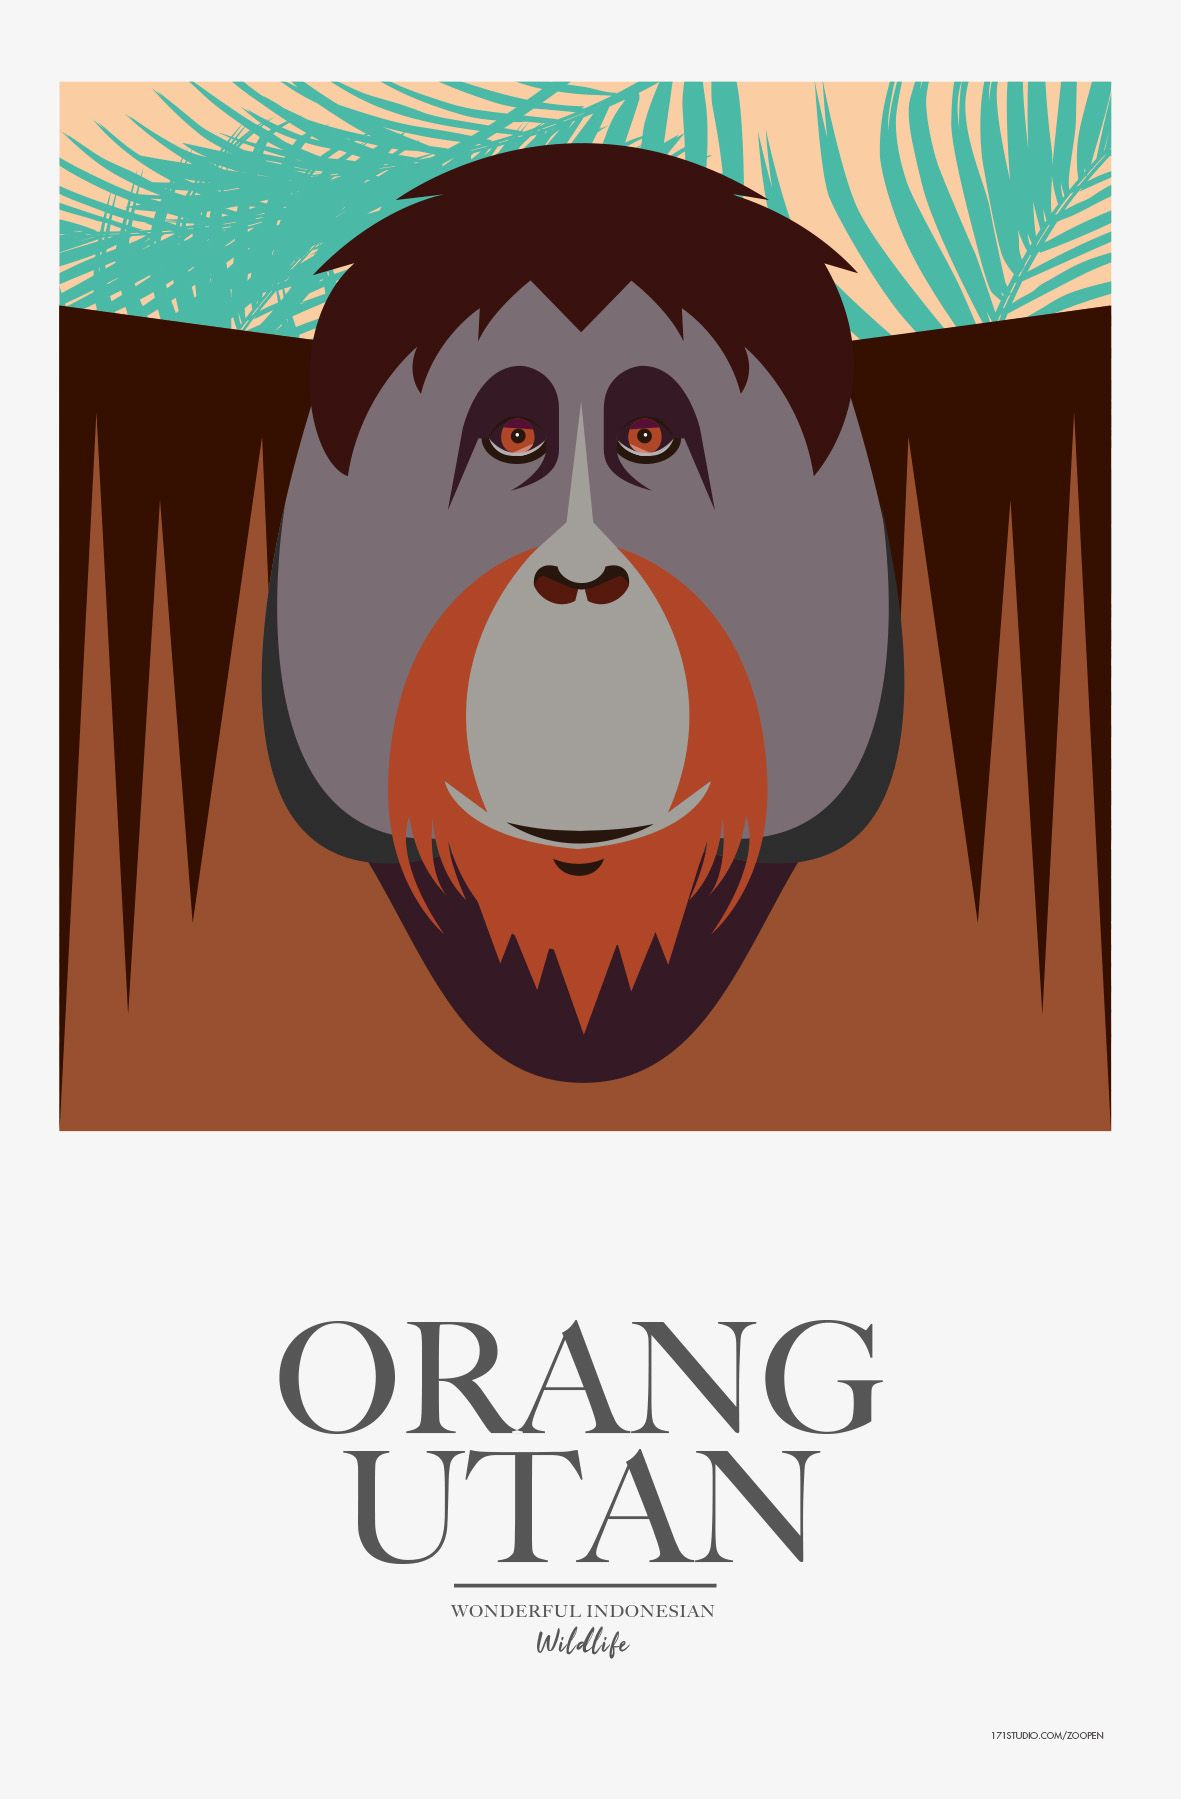 Poster Orang Utan Indonesian Wildlife 171STUDIO Mathieu